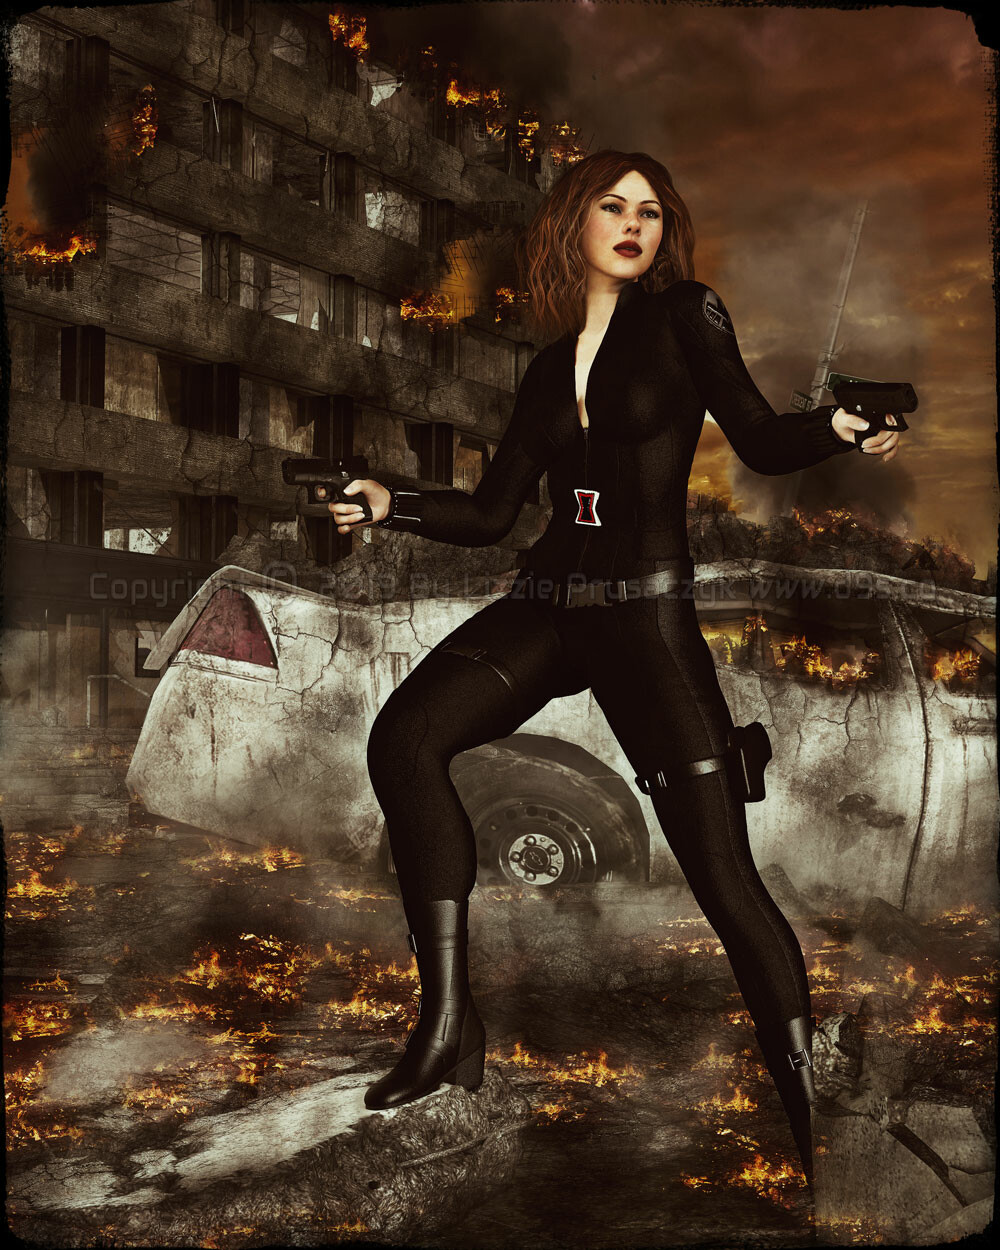 The notorious Black Widow is in the midst of a deadly battle in a city that has been turned to rubble and ruin.